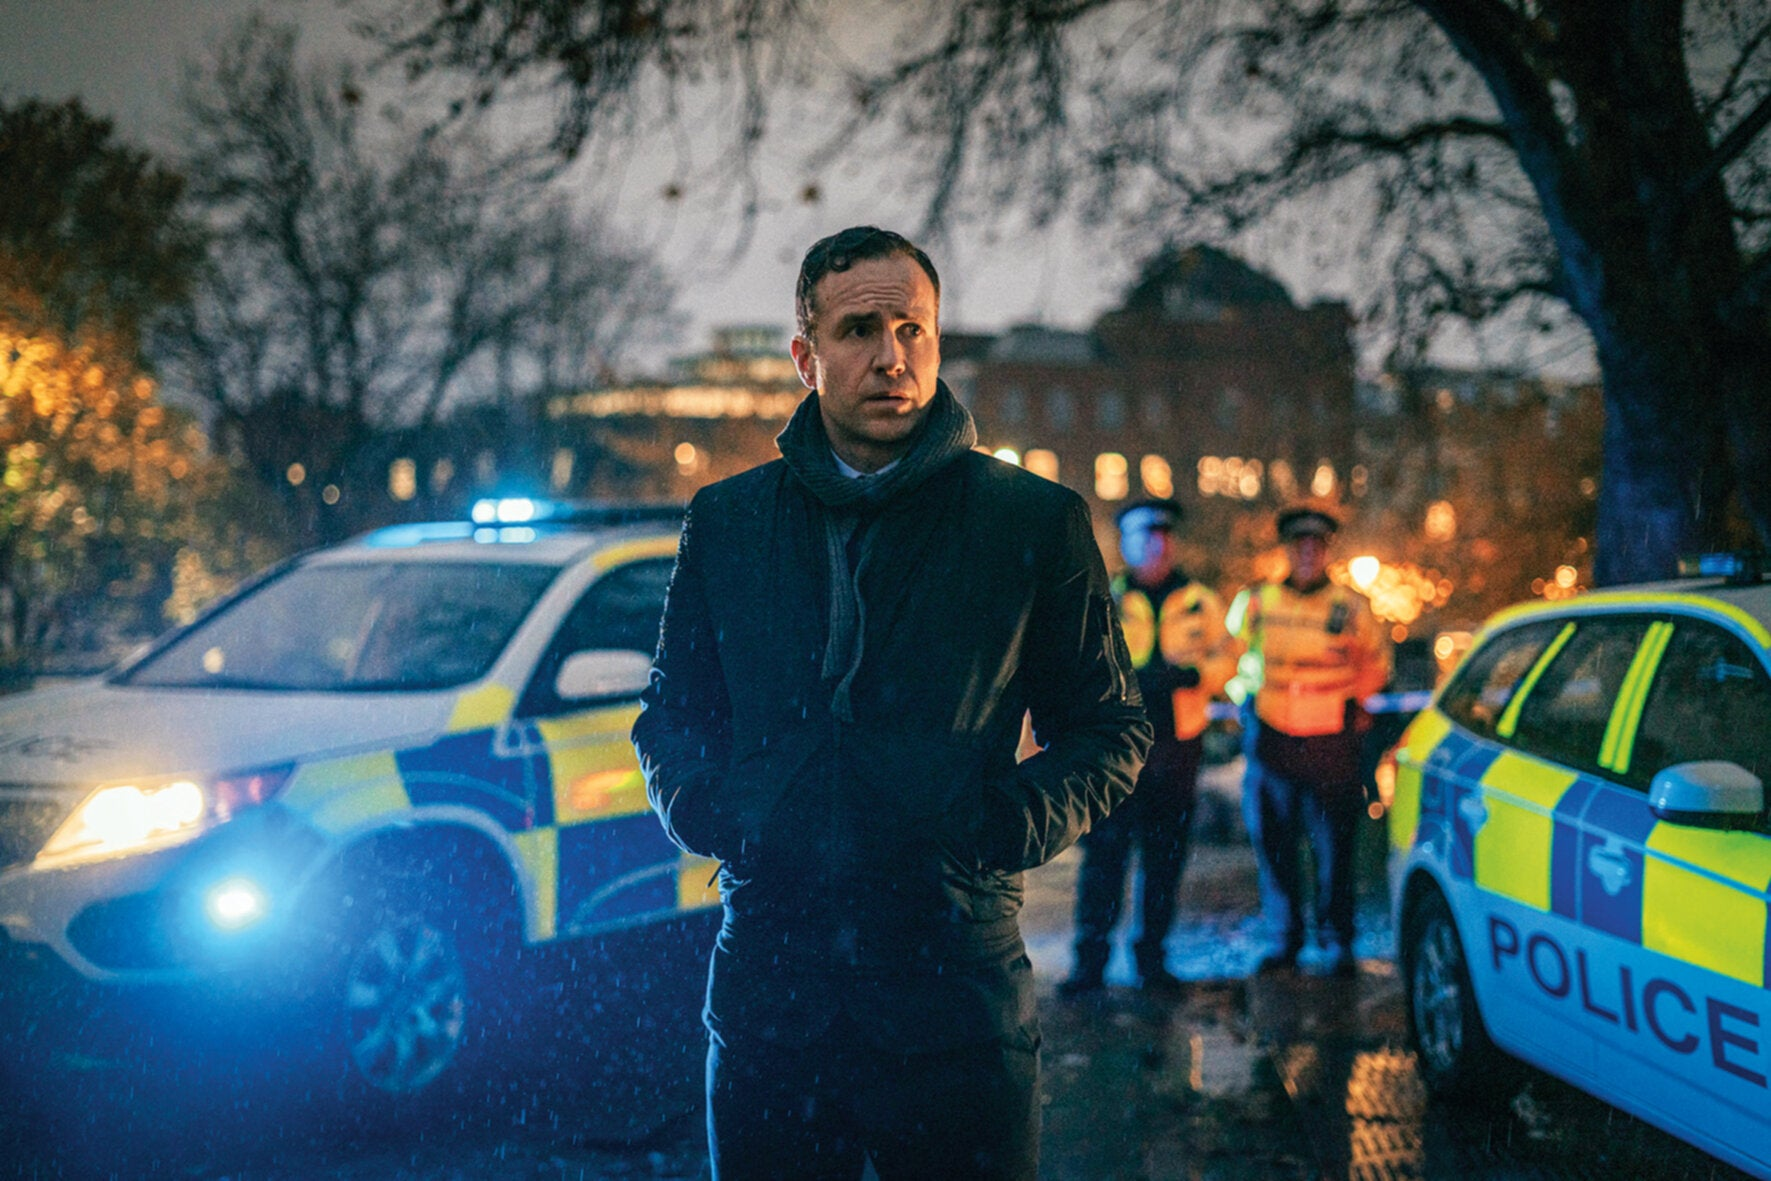 The Salisbury Poisonings is gripping and exemplary TV